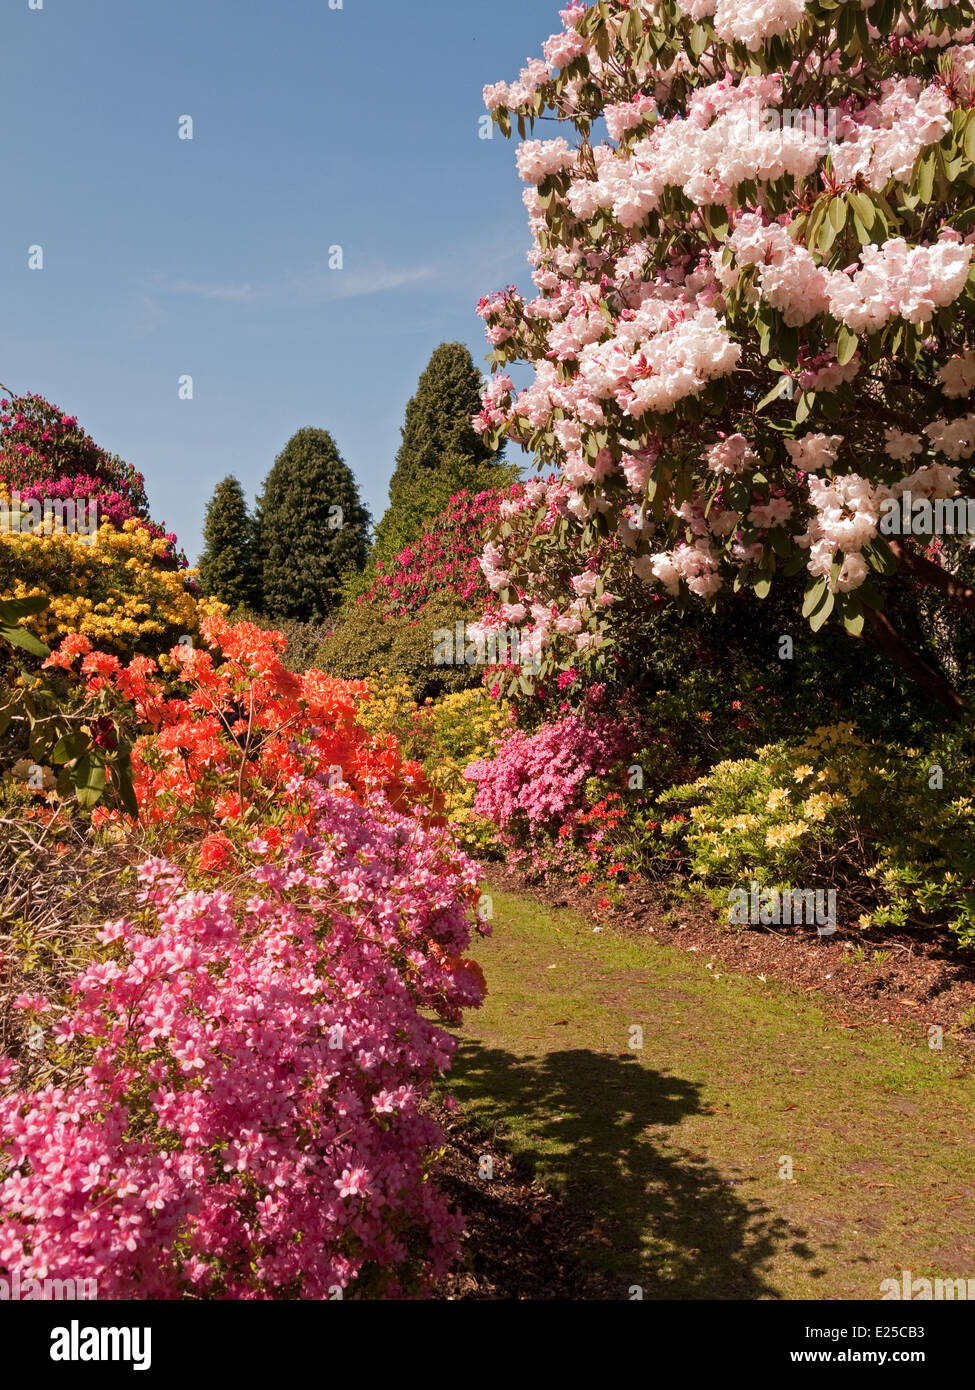 Rhododendron Landscaped Gardens Stock Photos & Rhododendron ...